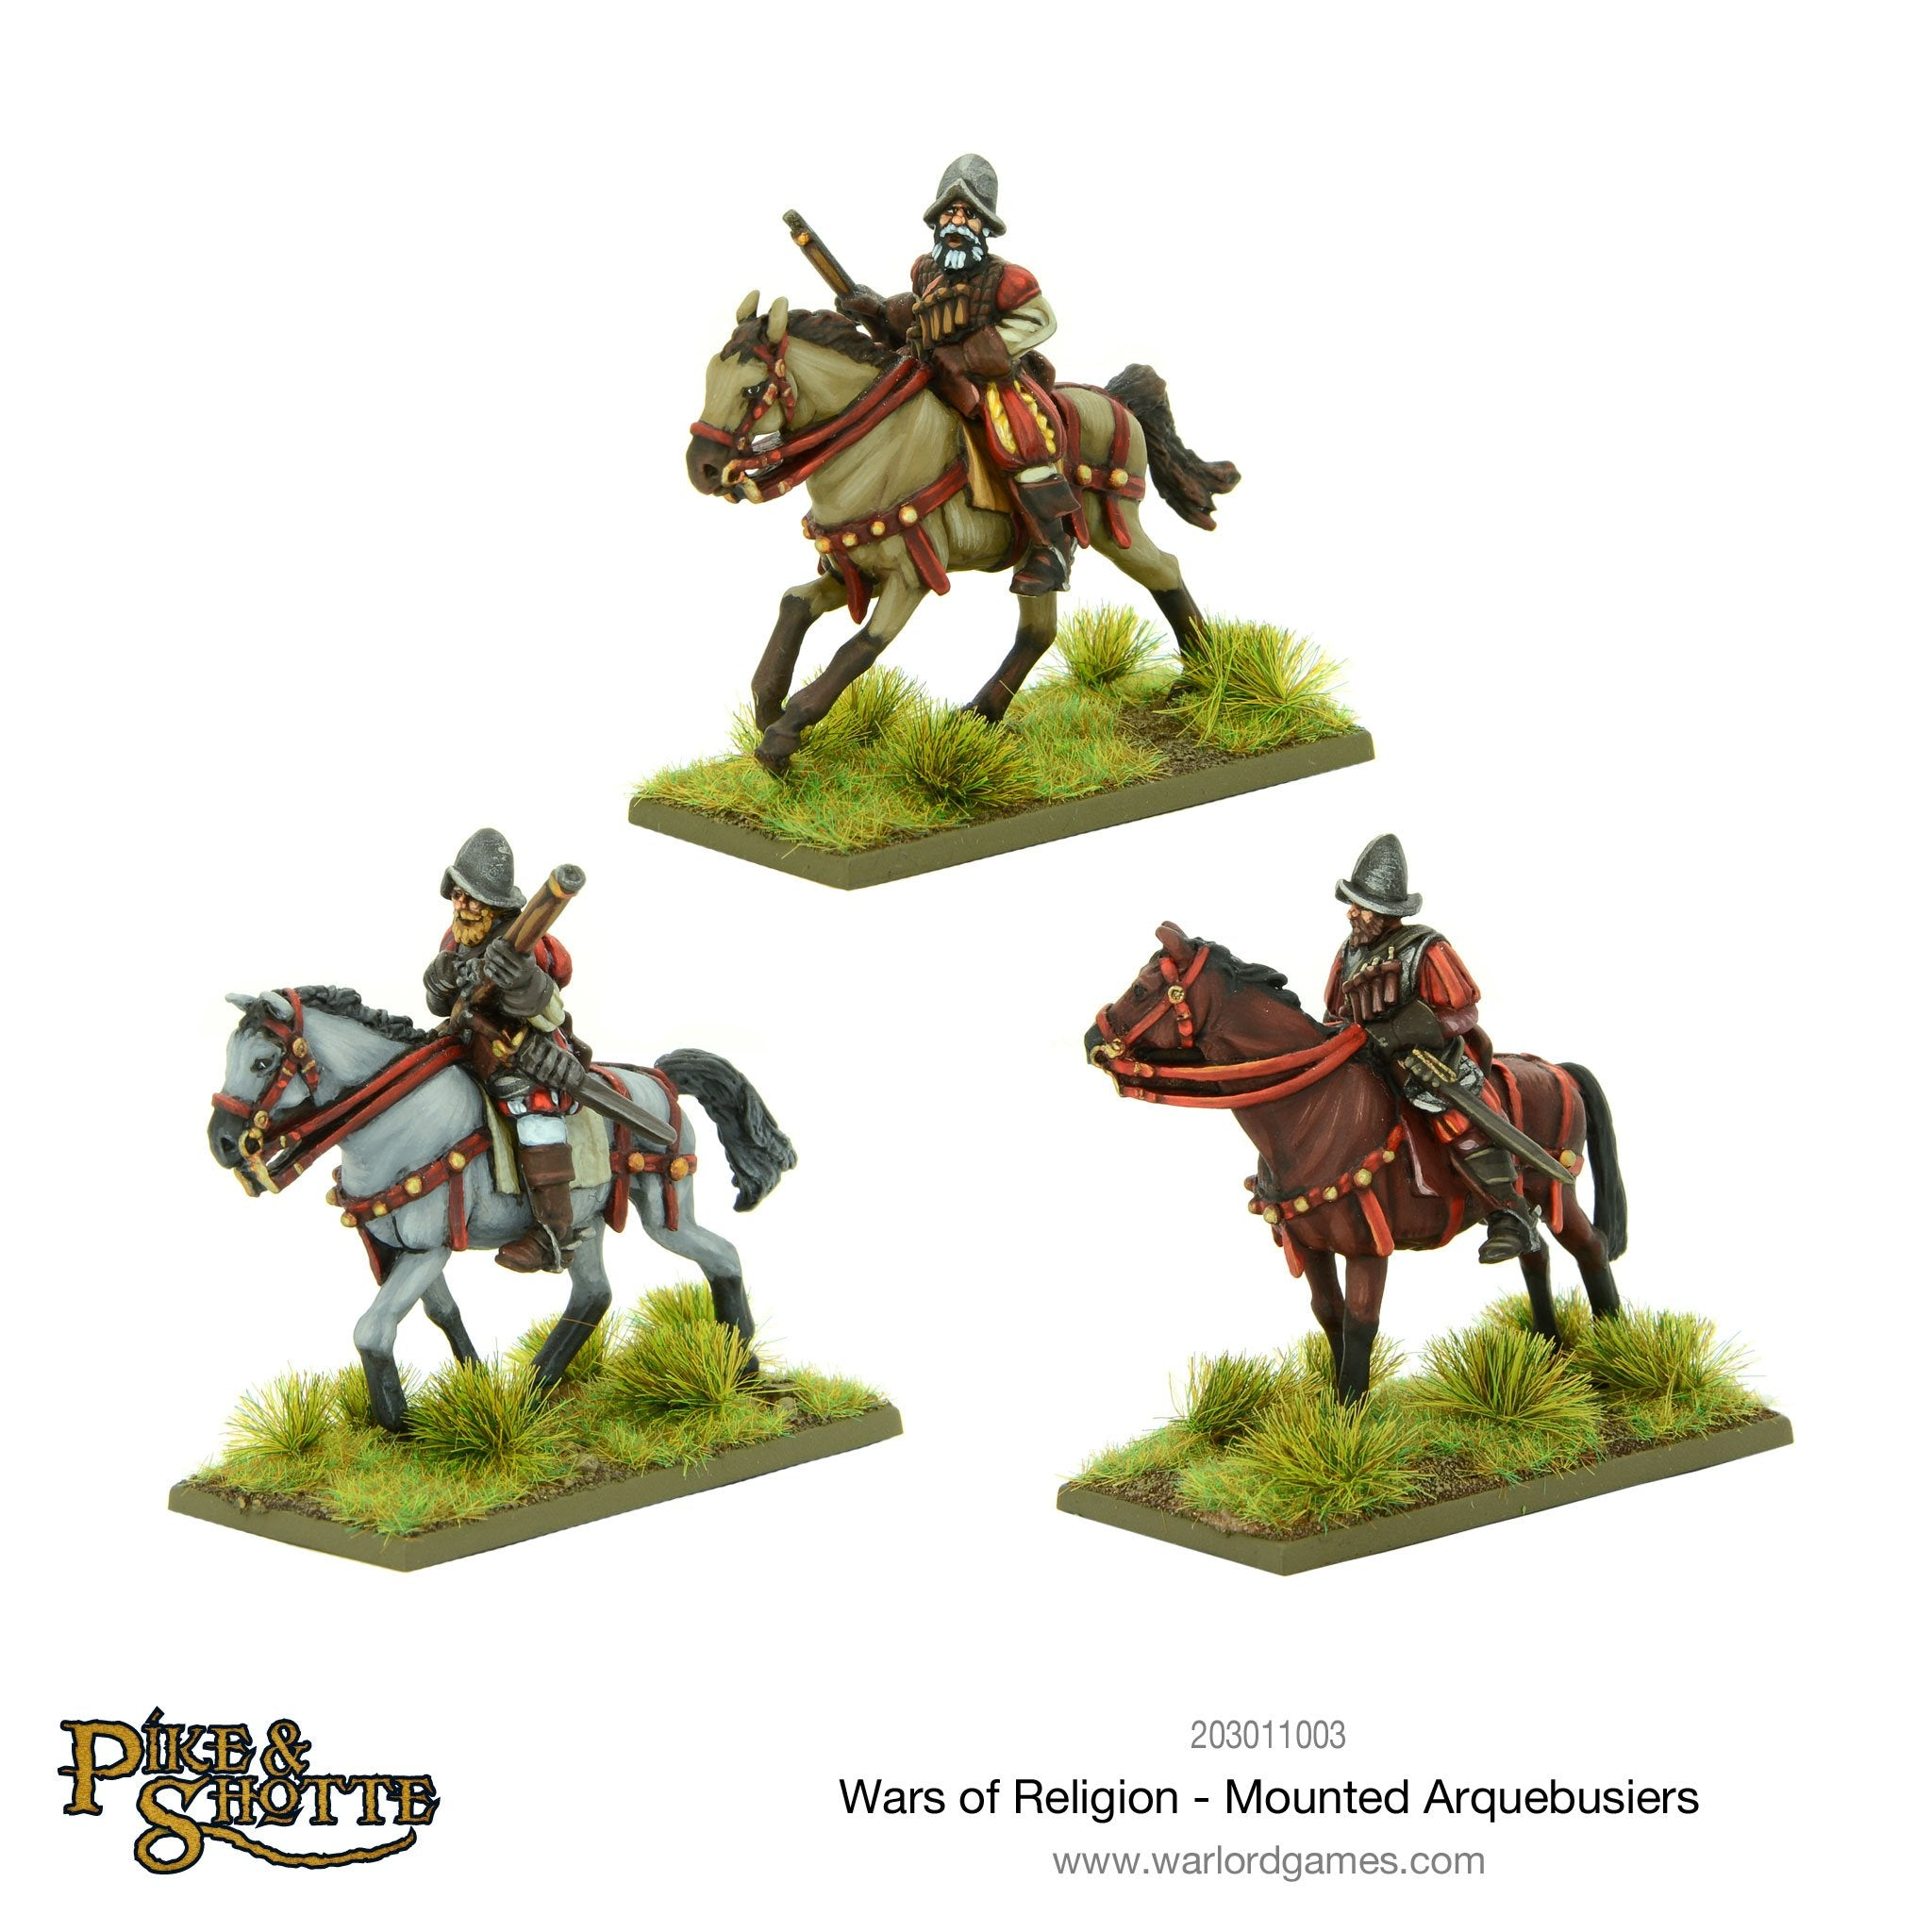 Wars of Religion Mounted Arquebusiers